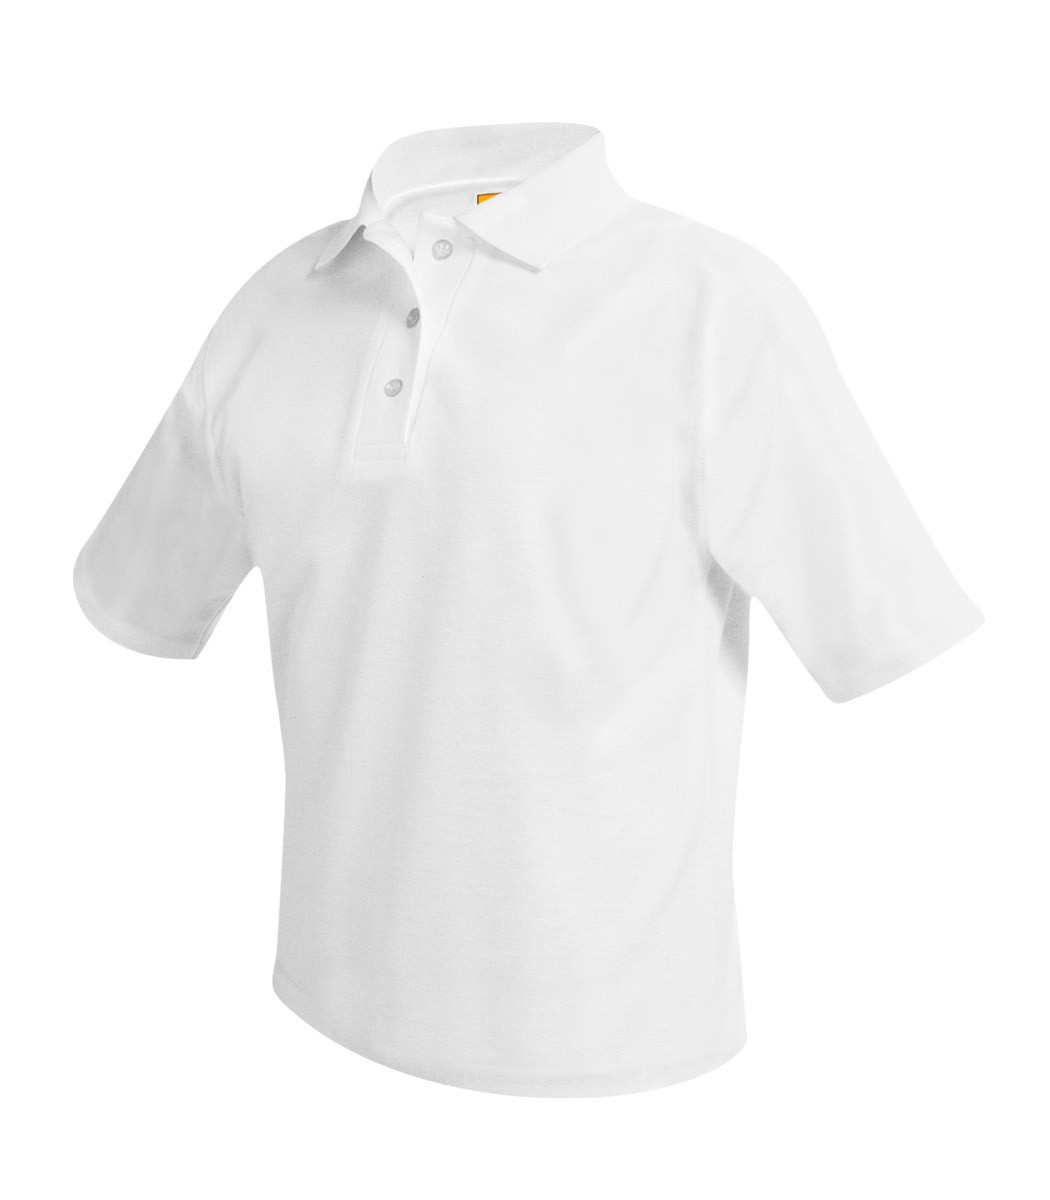 NATIVITY Girls' Plain White S/S Polo